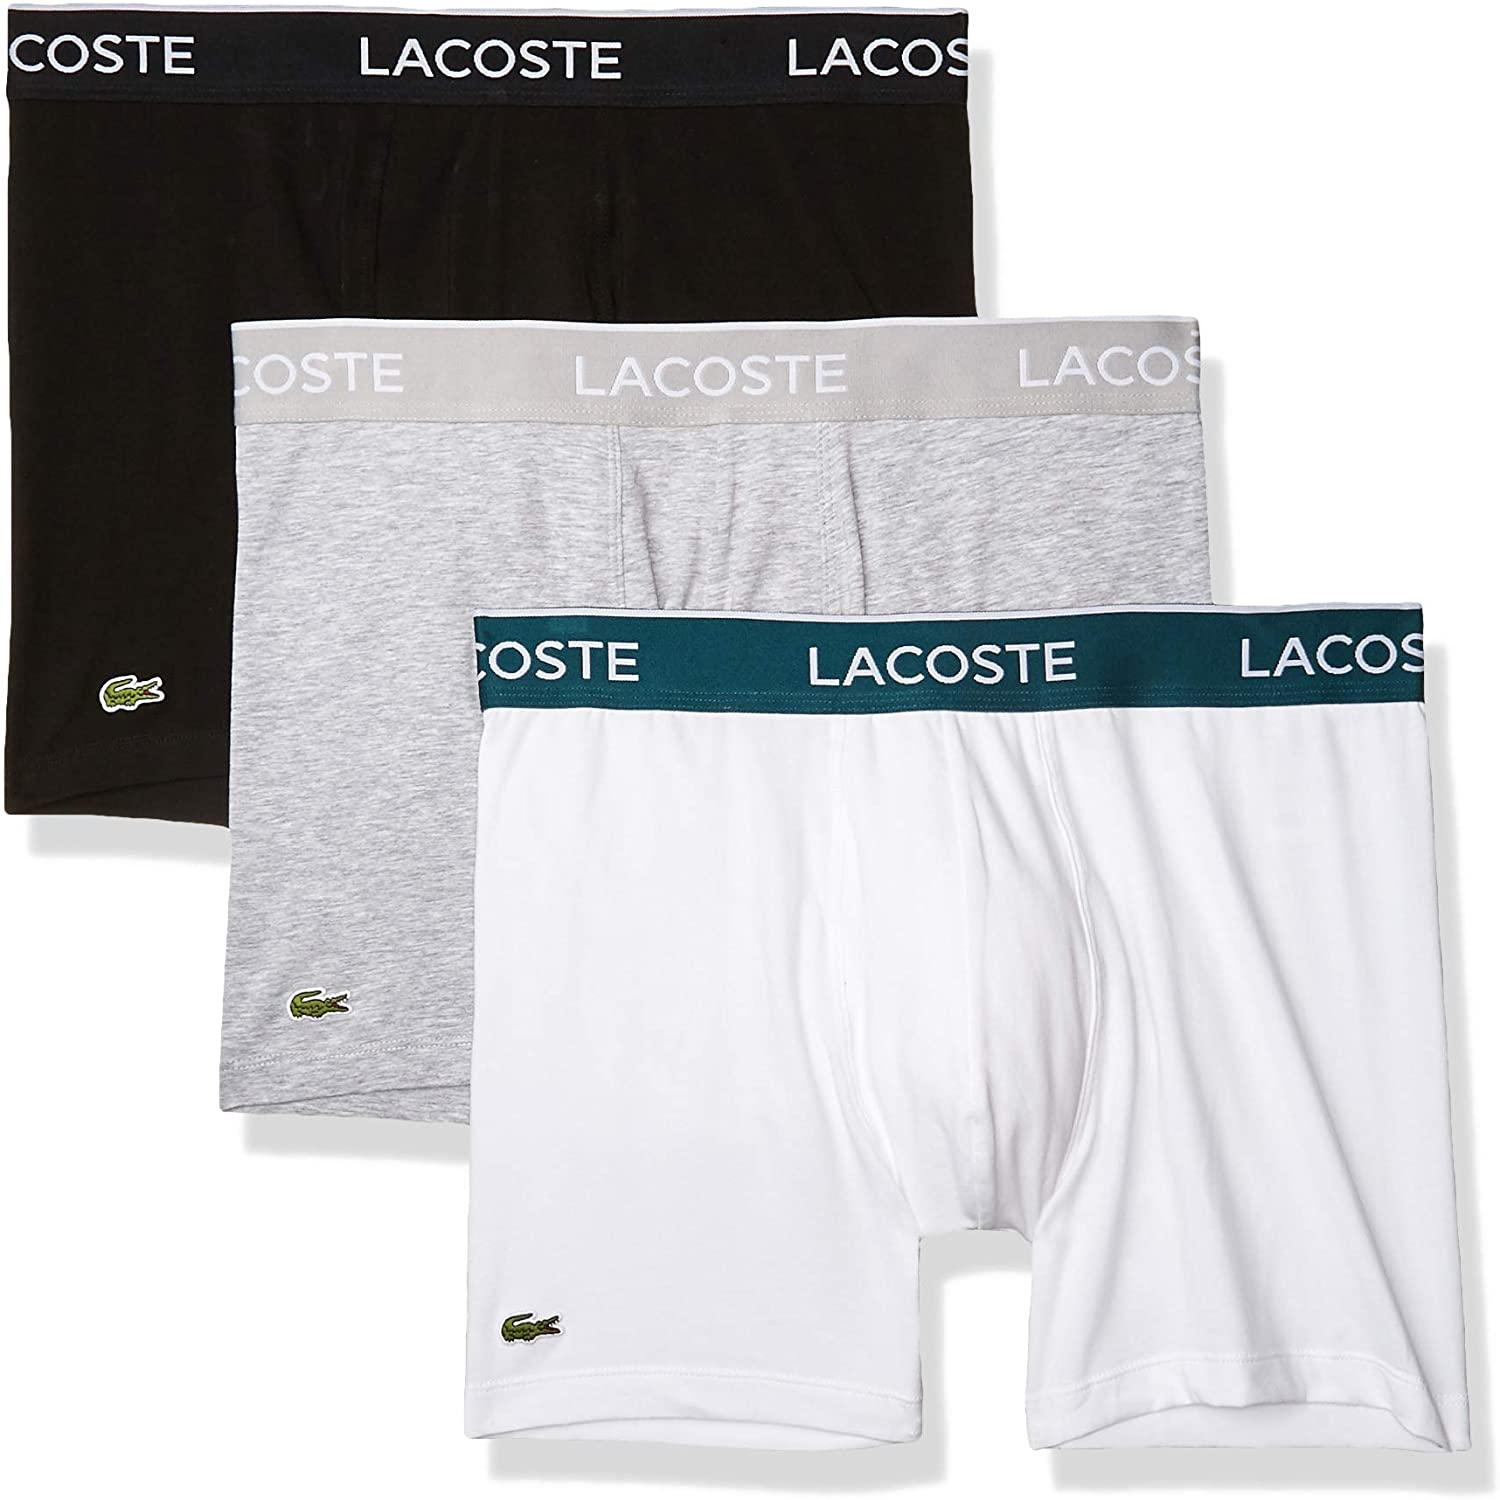 Lacoste Mens Casual Classic 3 Pack Cotton Stretch Boxer Briefs